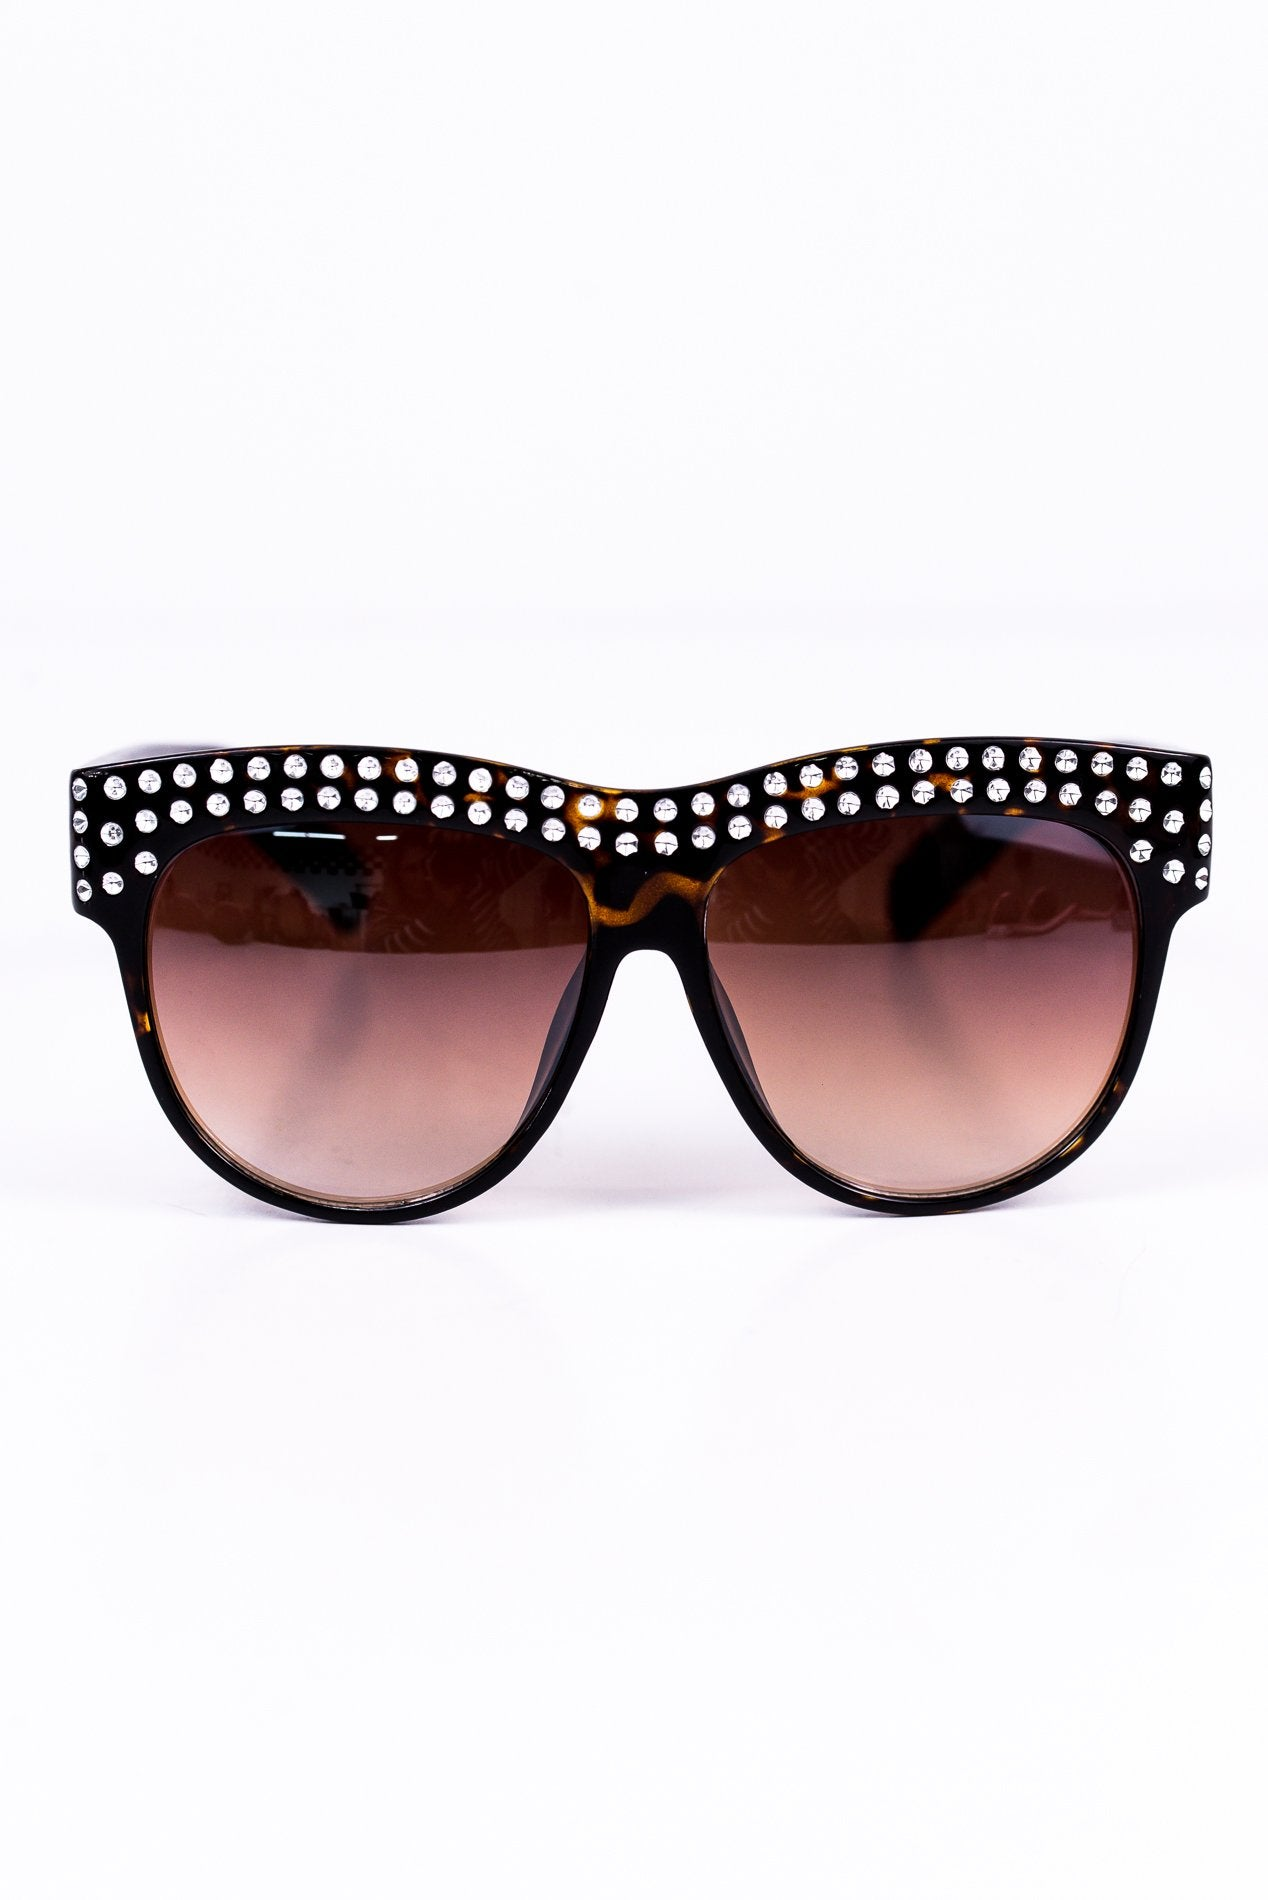 Brown Tortoise Rhinestone Bling Sunglasses - SGL135BR - FREE hard case